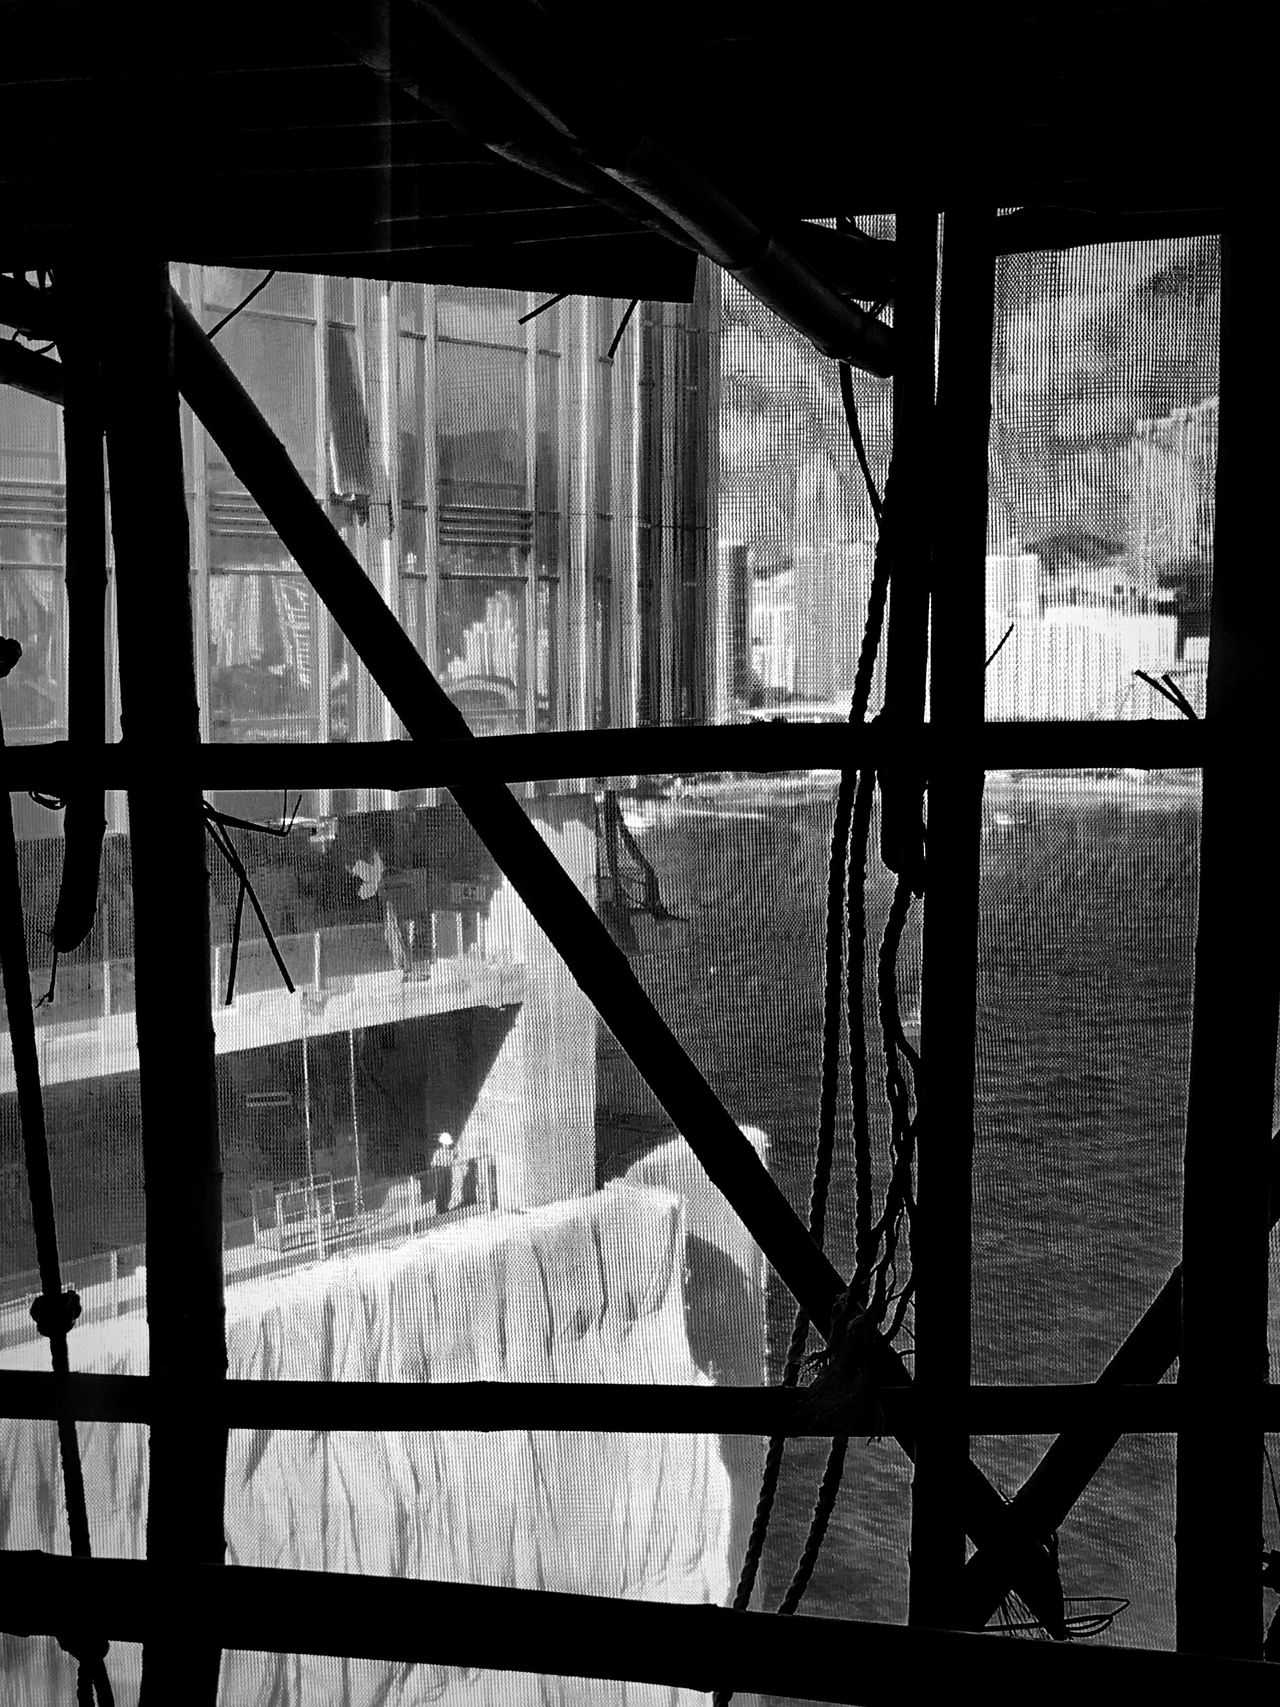 Window Architecture Bamboo Scaffolding Safety Net Hong Kong Building Urban Skyline Black & White Black And White Hong Kong Architecture Monochrome IPhoneography Light And Shadow Pattern, Texture, Shape And Form Architecture Building And Sky Construction Site Behind The Screen Man In Building